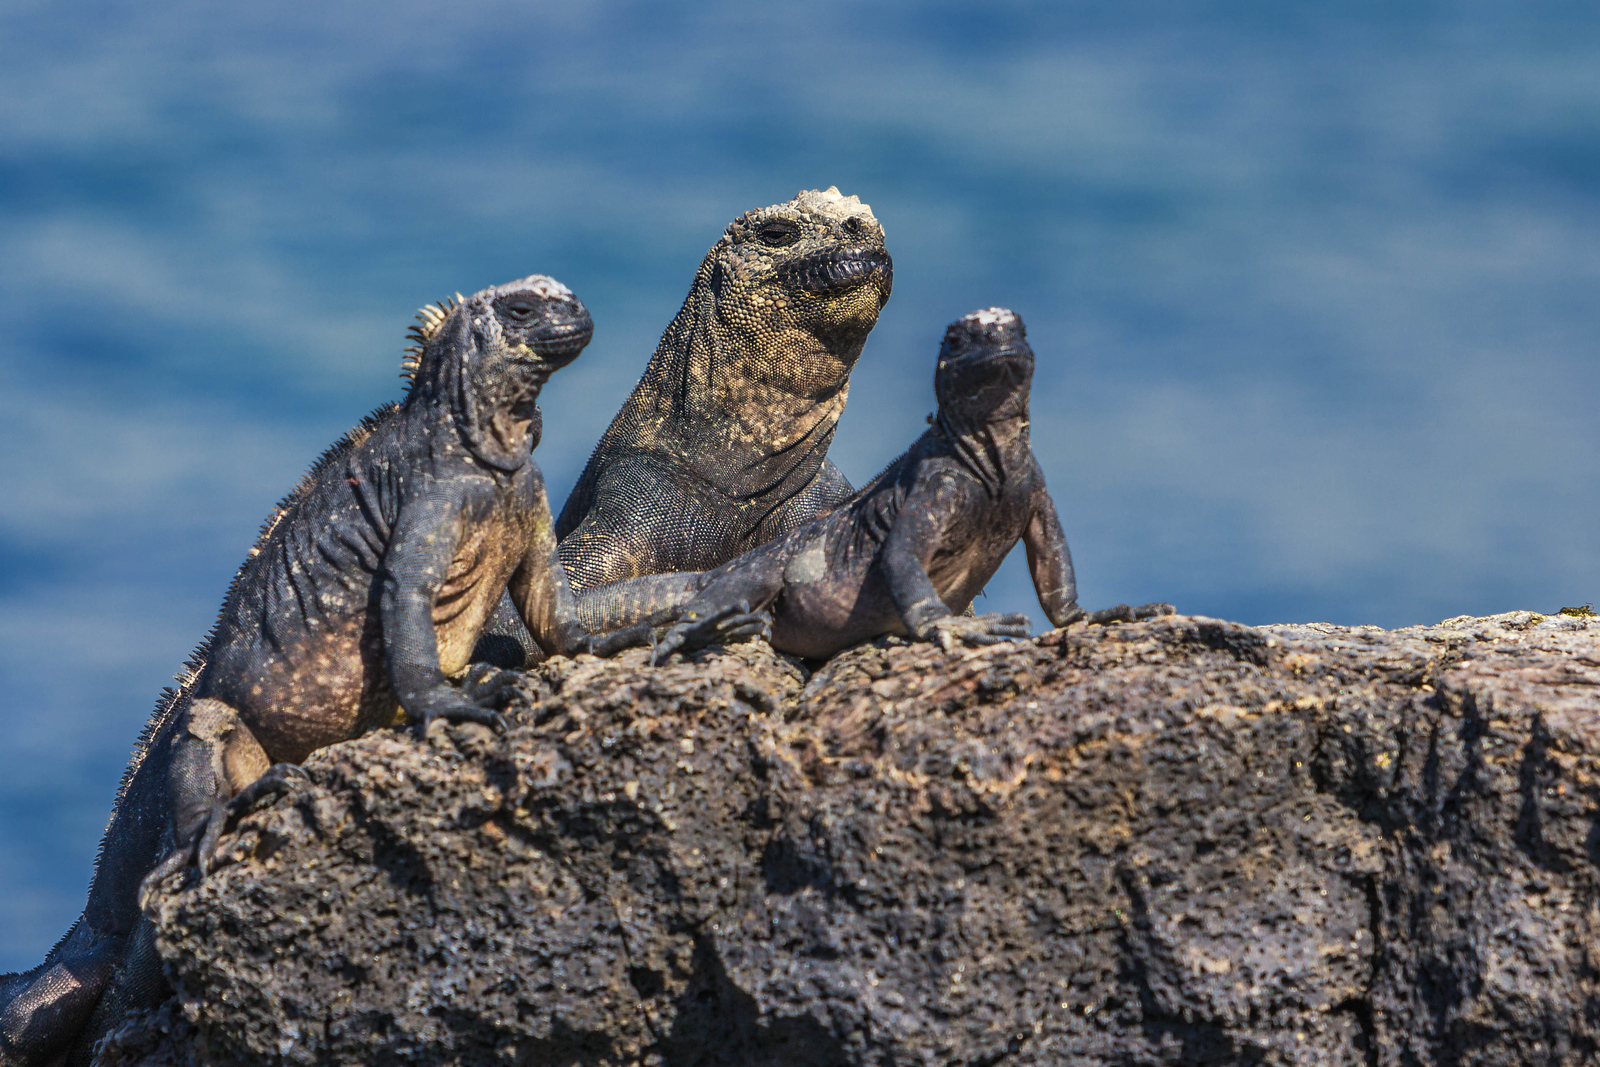 The Galapagos Marine Iguana is only found here.